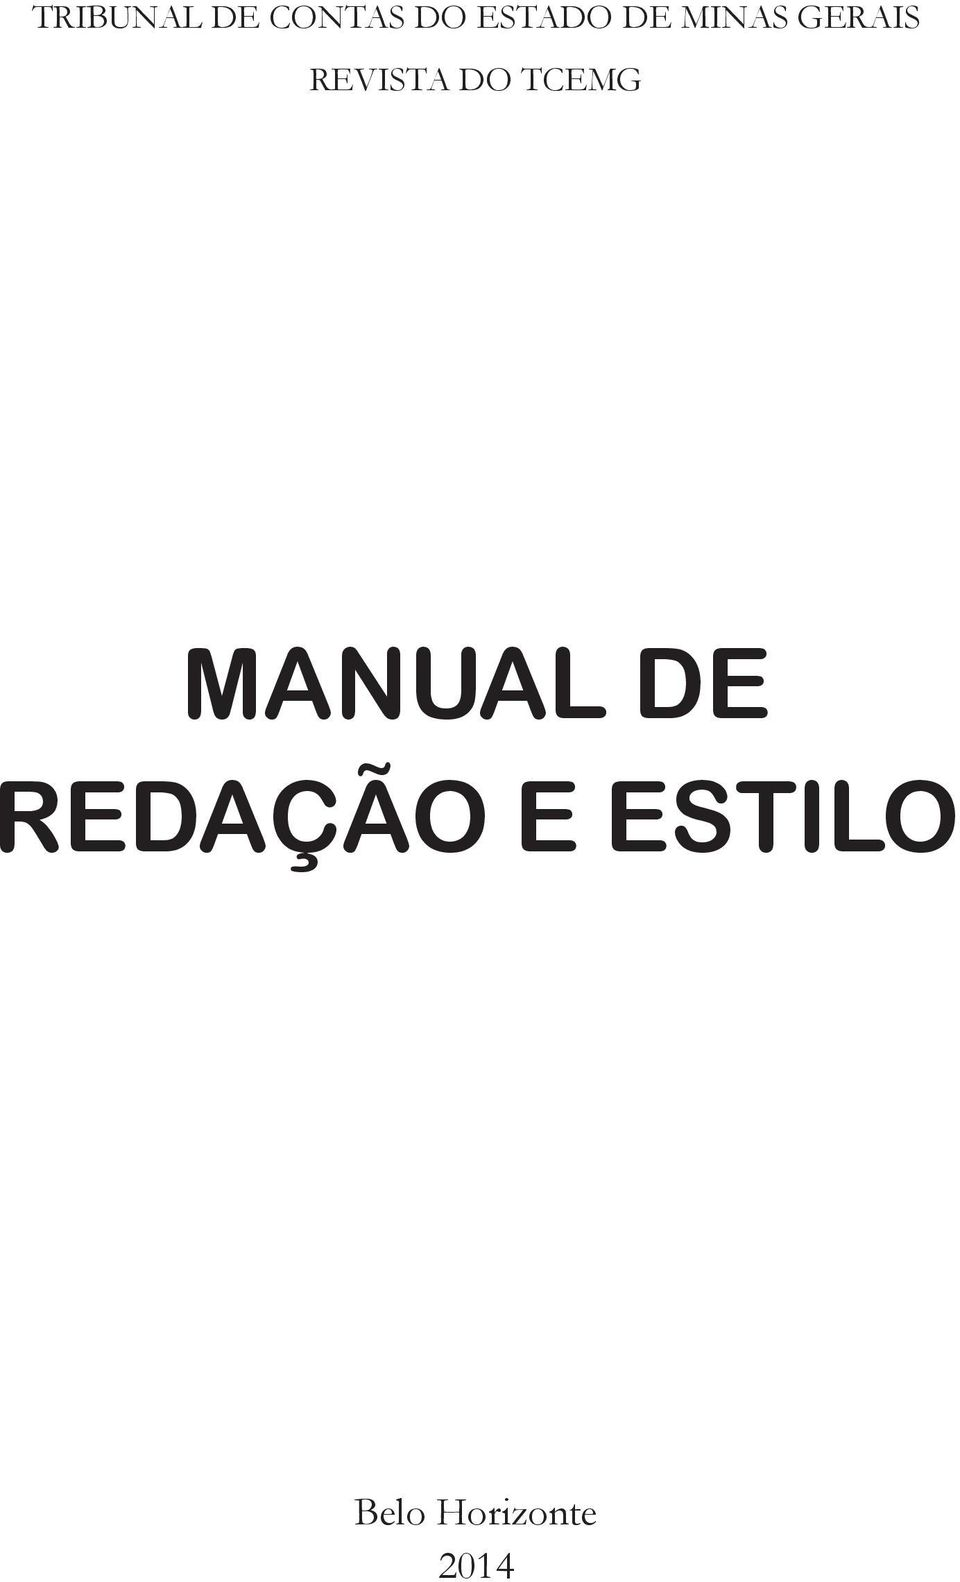 REVISTA DO TCEMG MANUAL DE